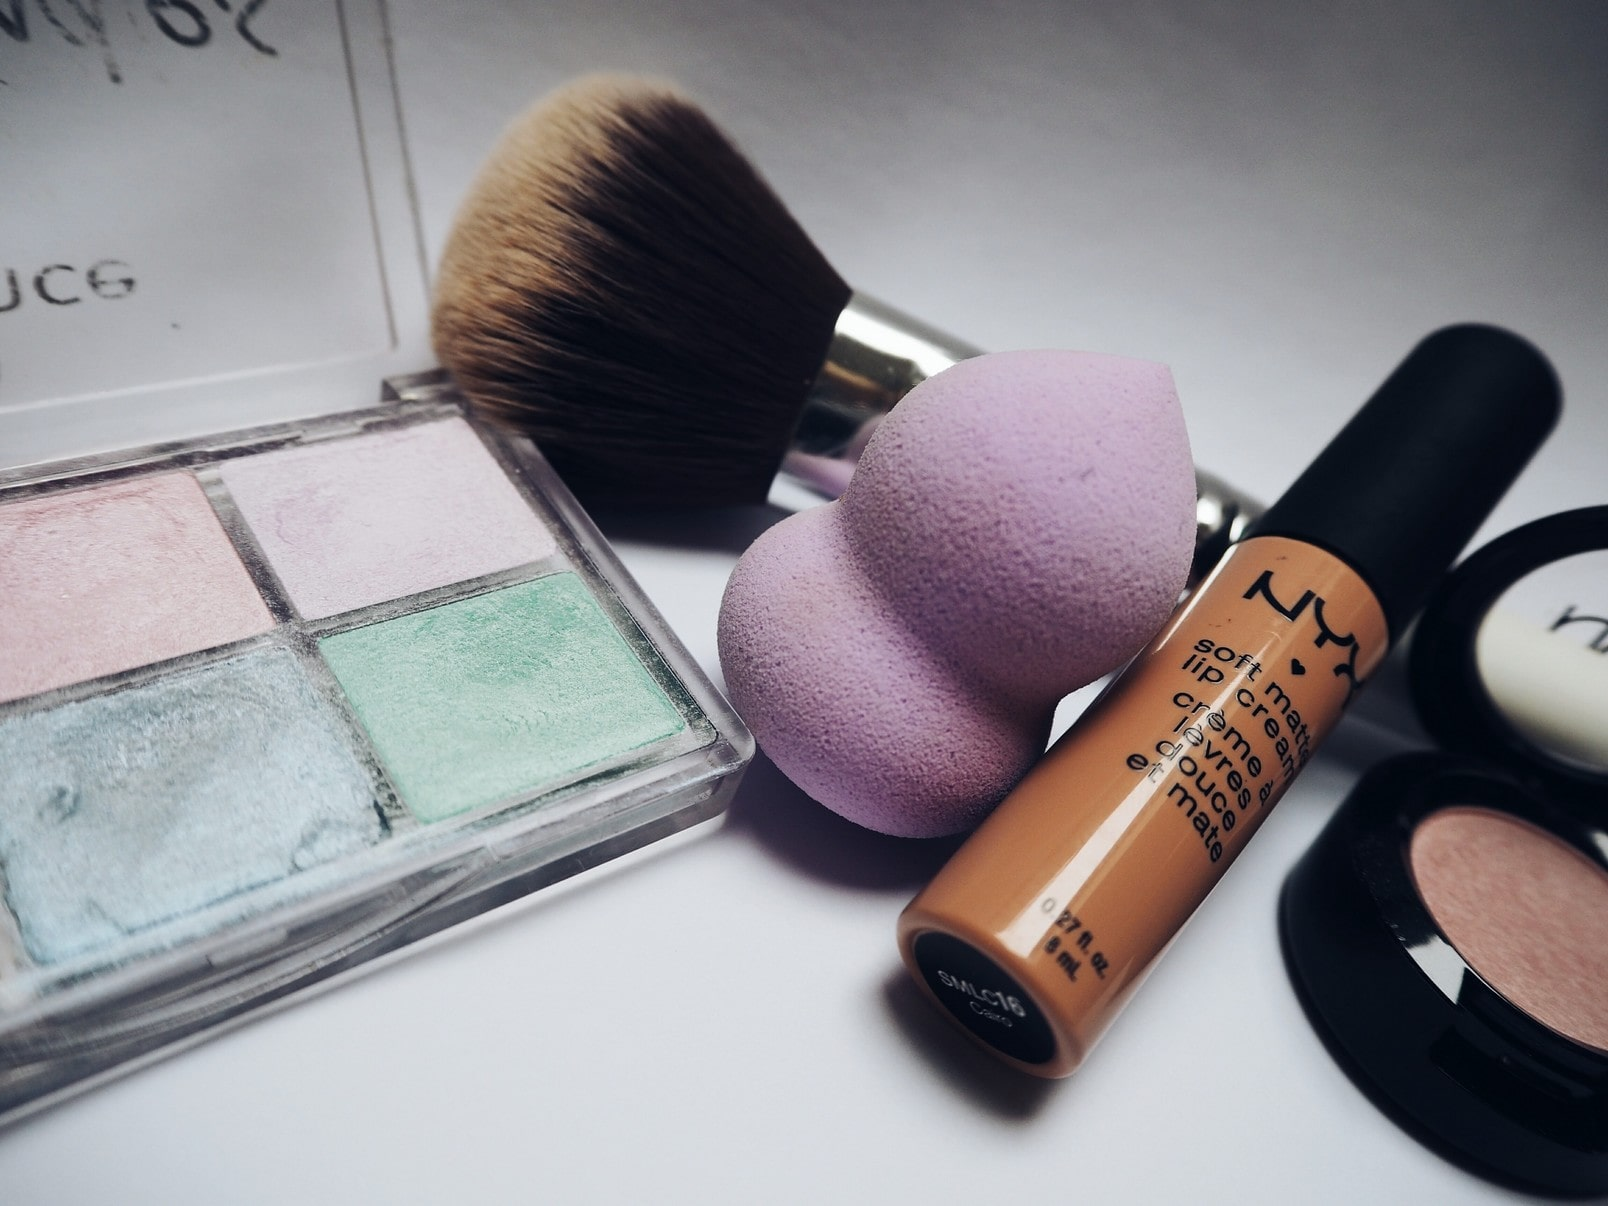 cosmetics, various eyeshadow colours, a beauty blender and brush.